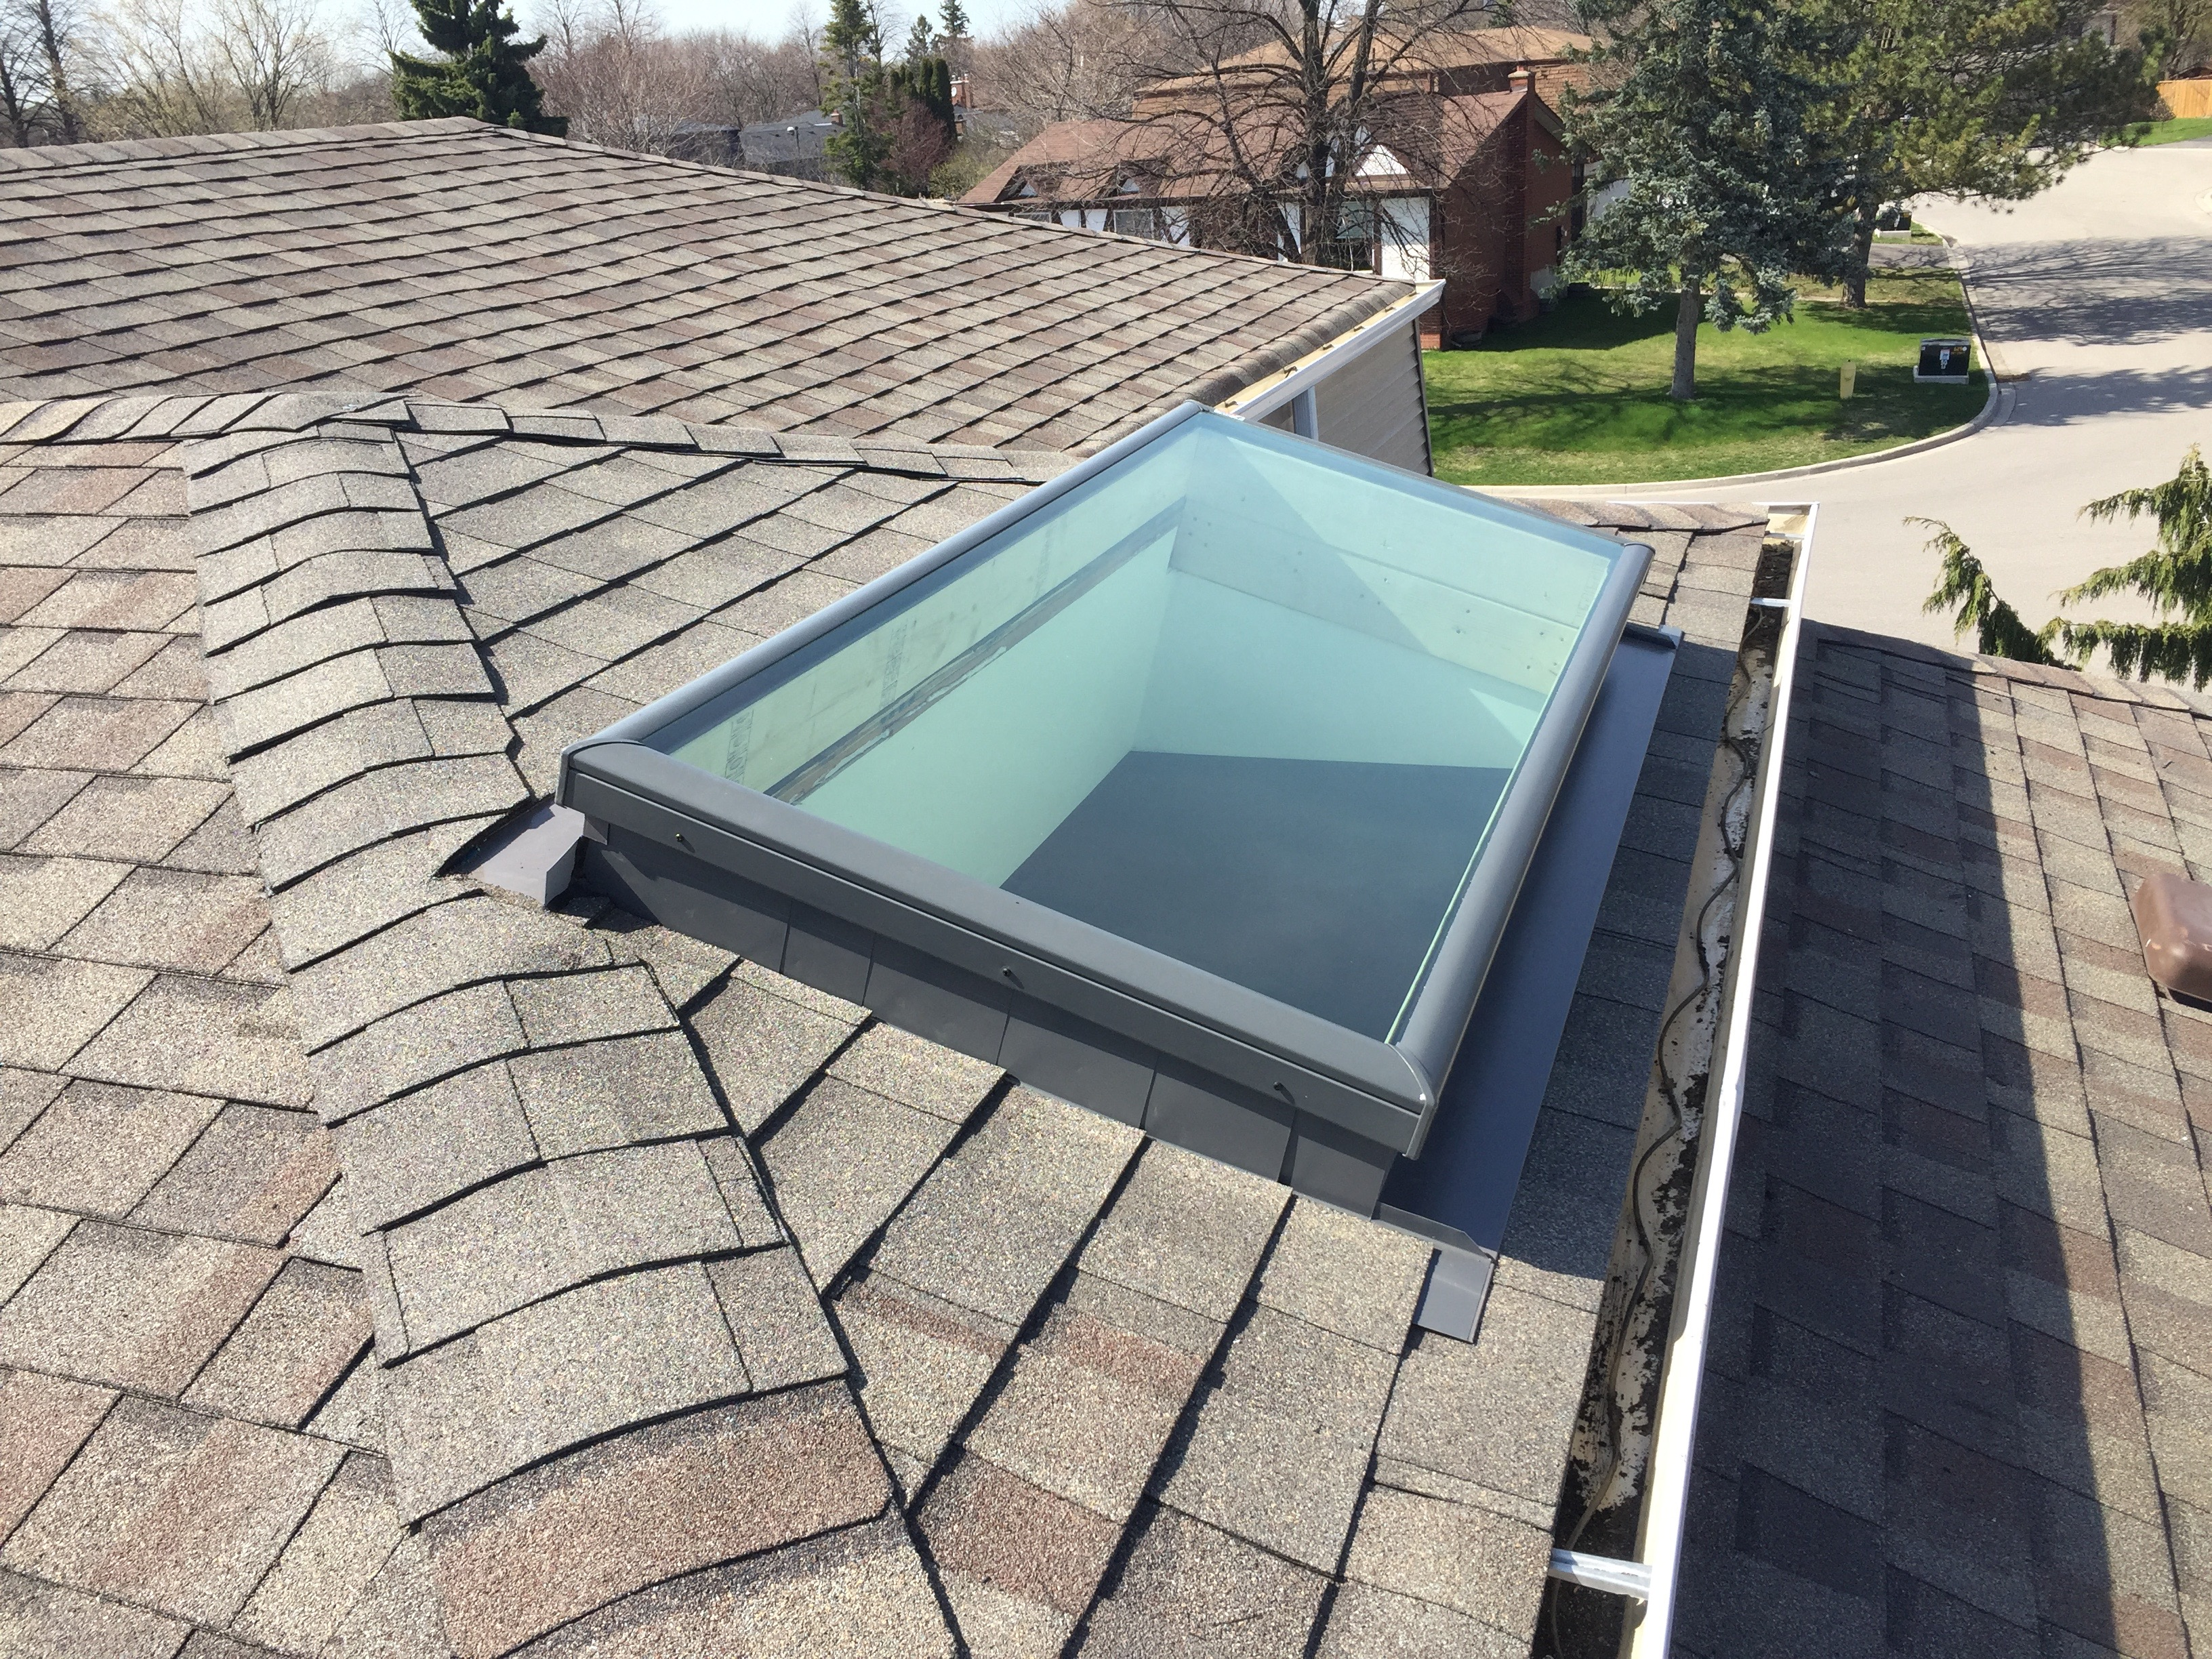 Skylight Repair Port Hope